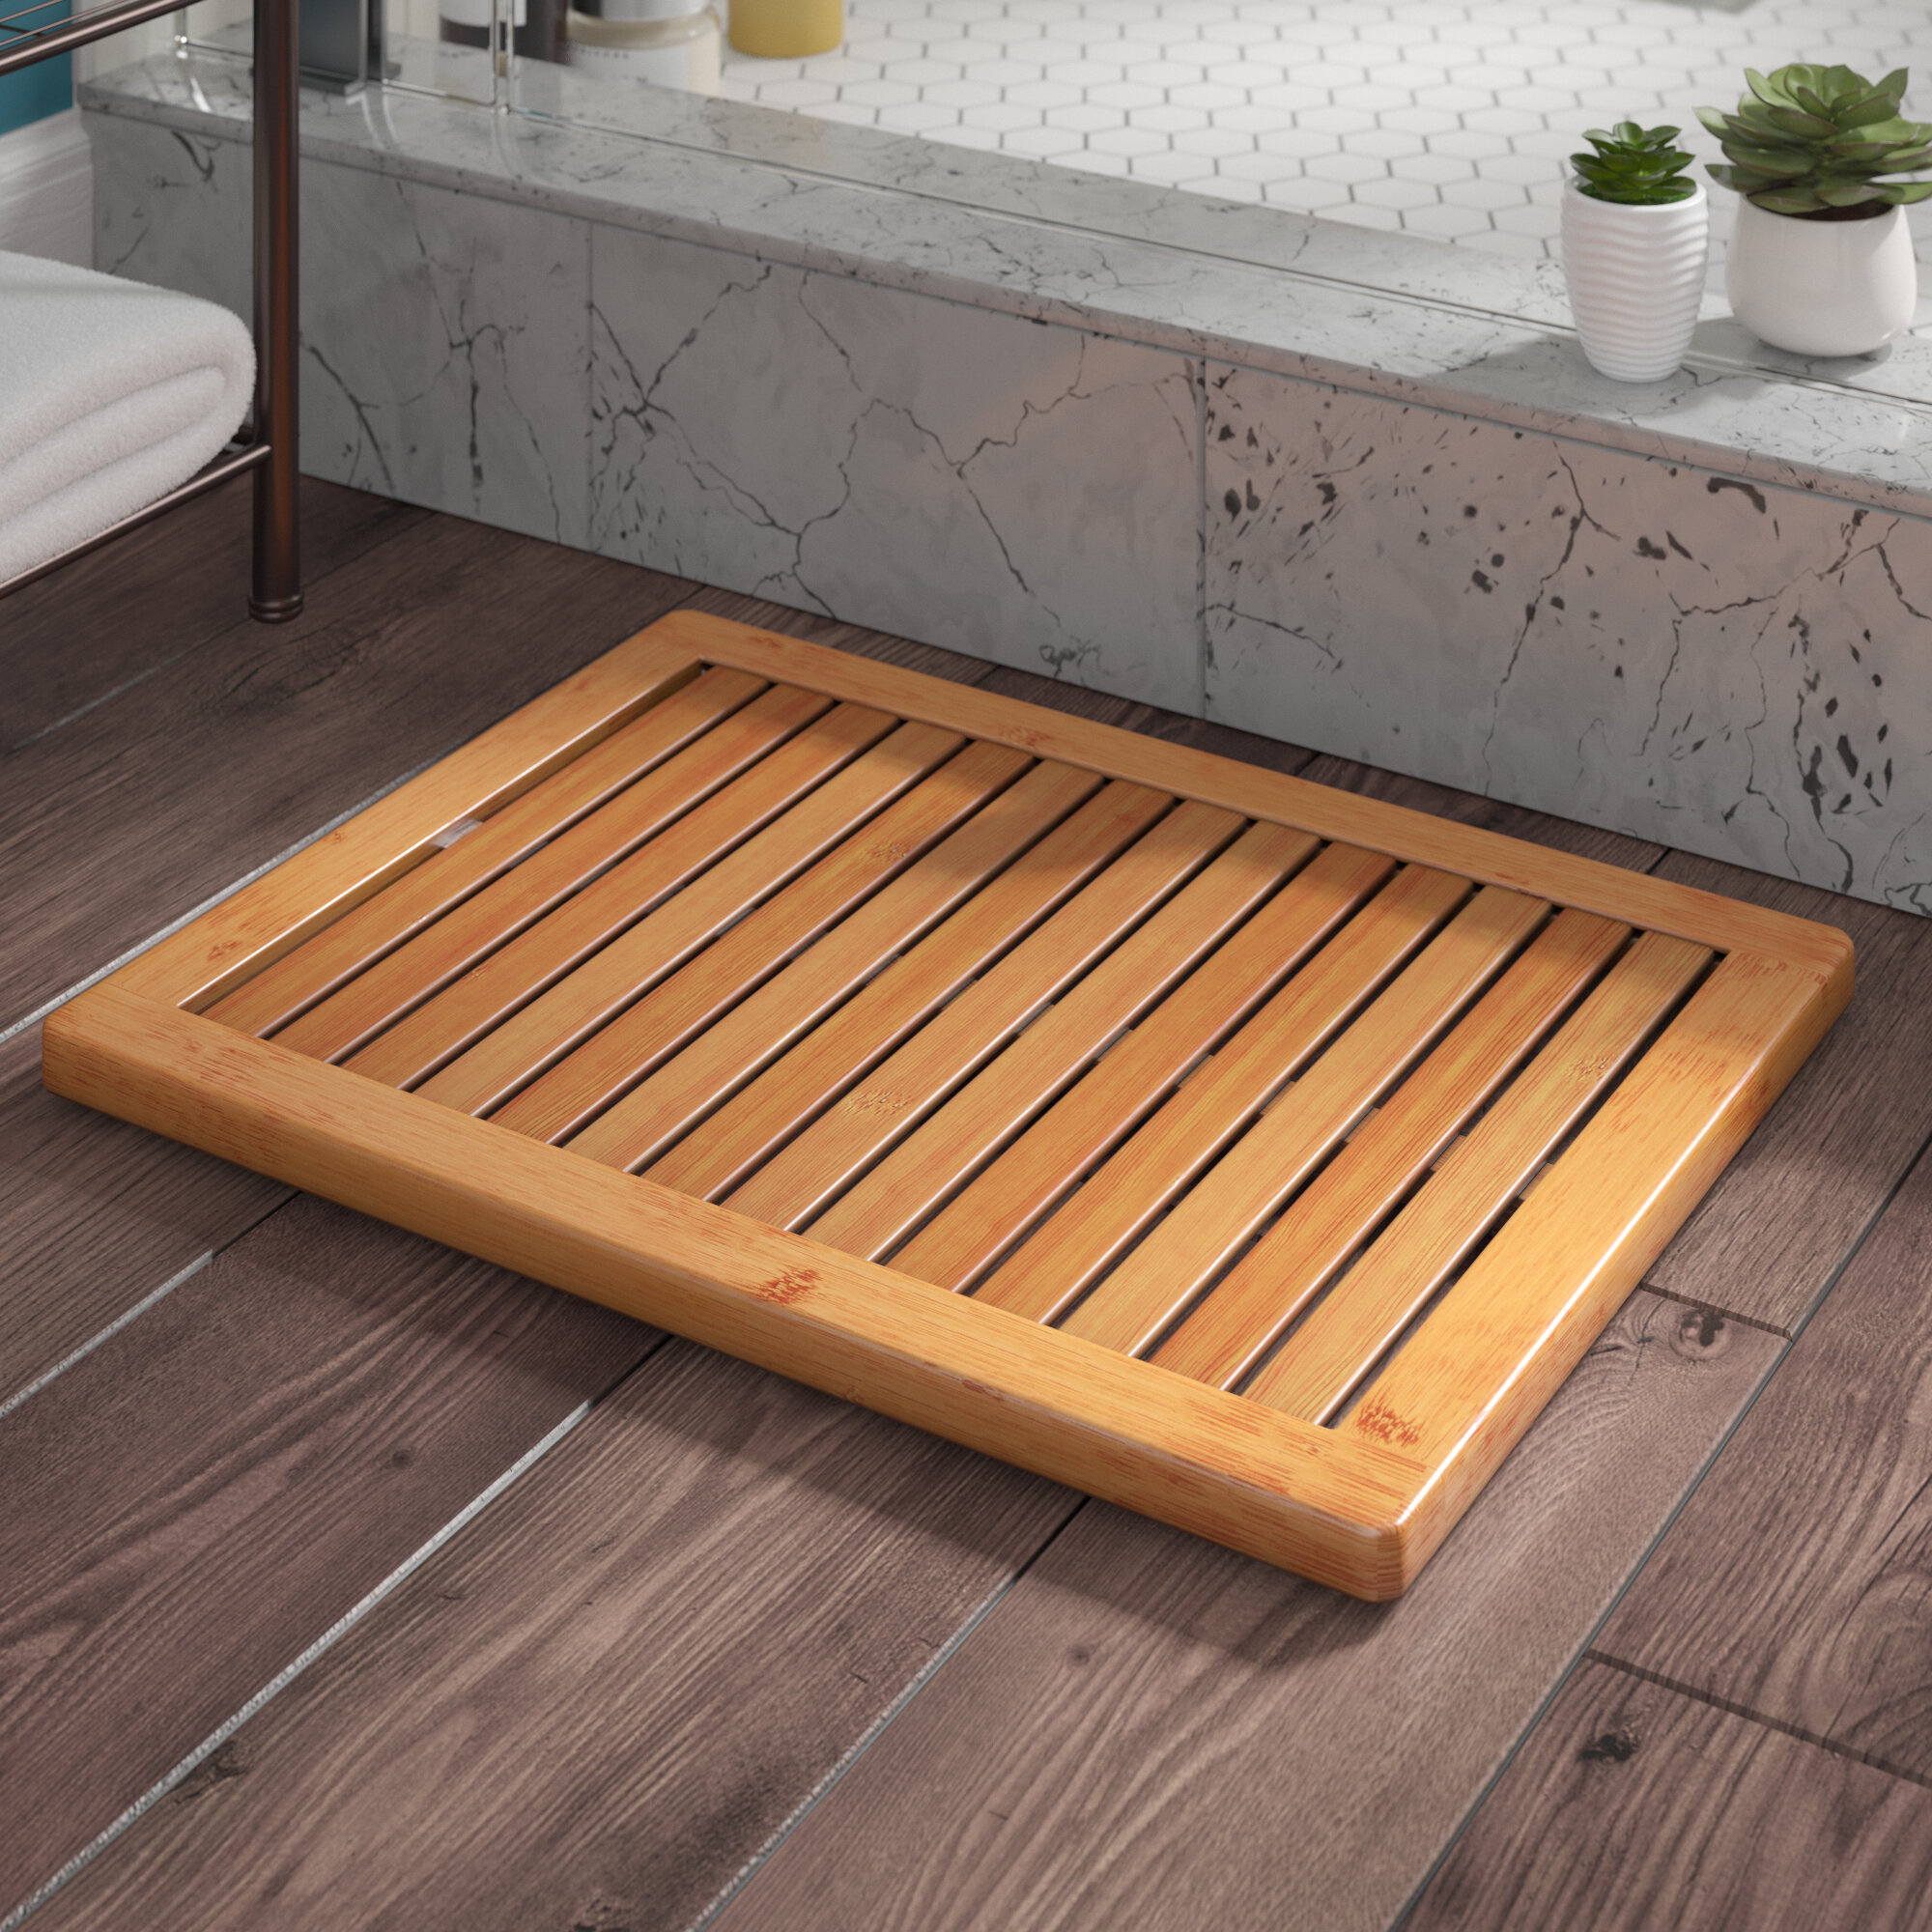 7c58e08592e6 Langley Street Almonte Bamboo Floor   Shower Mat Bath Rugs   Reviews ...